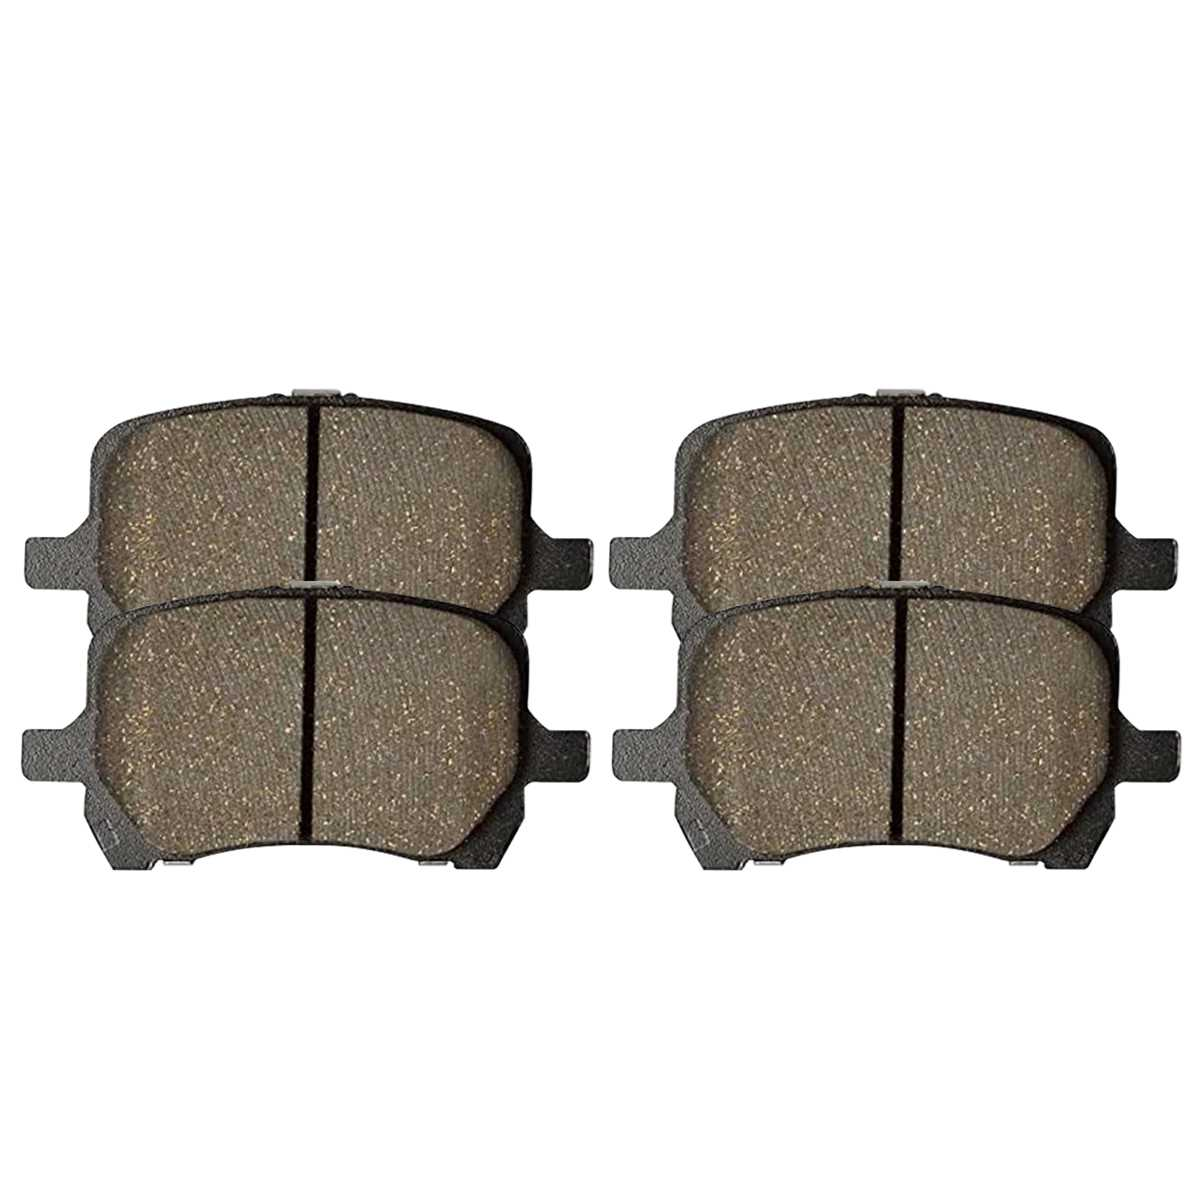 AutoShack PCDR63040630401285 Front Brake Rotors and Performance Ceramic Pads